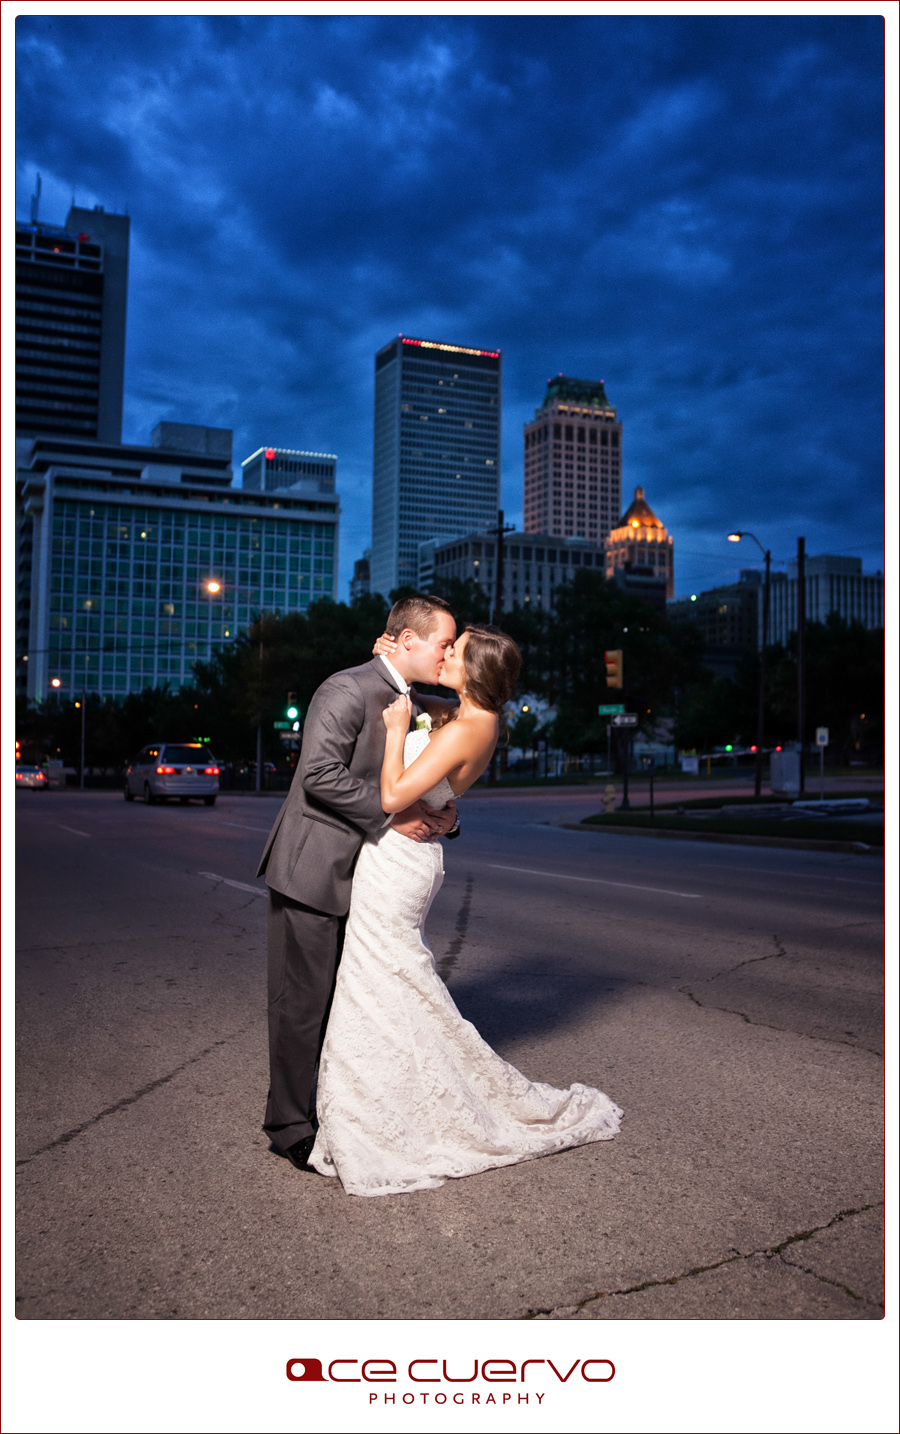 Ace Cuervo Photography, Tulsa Wedding Photography, Jazz Hall of Fame